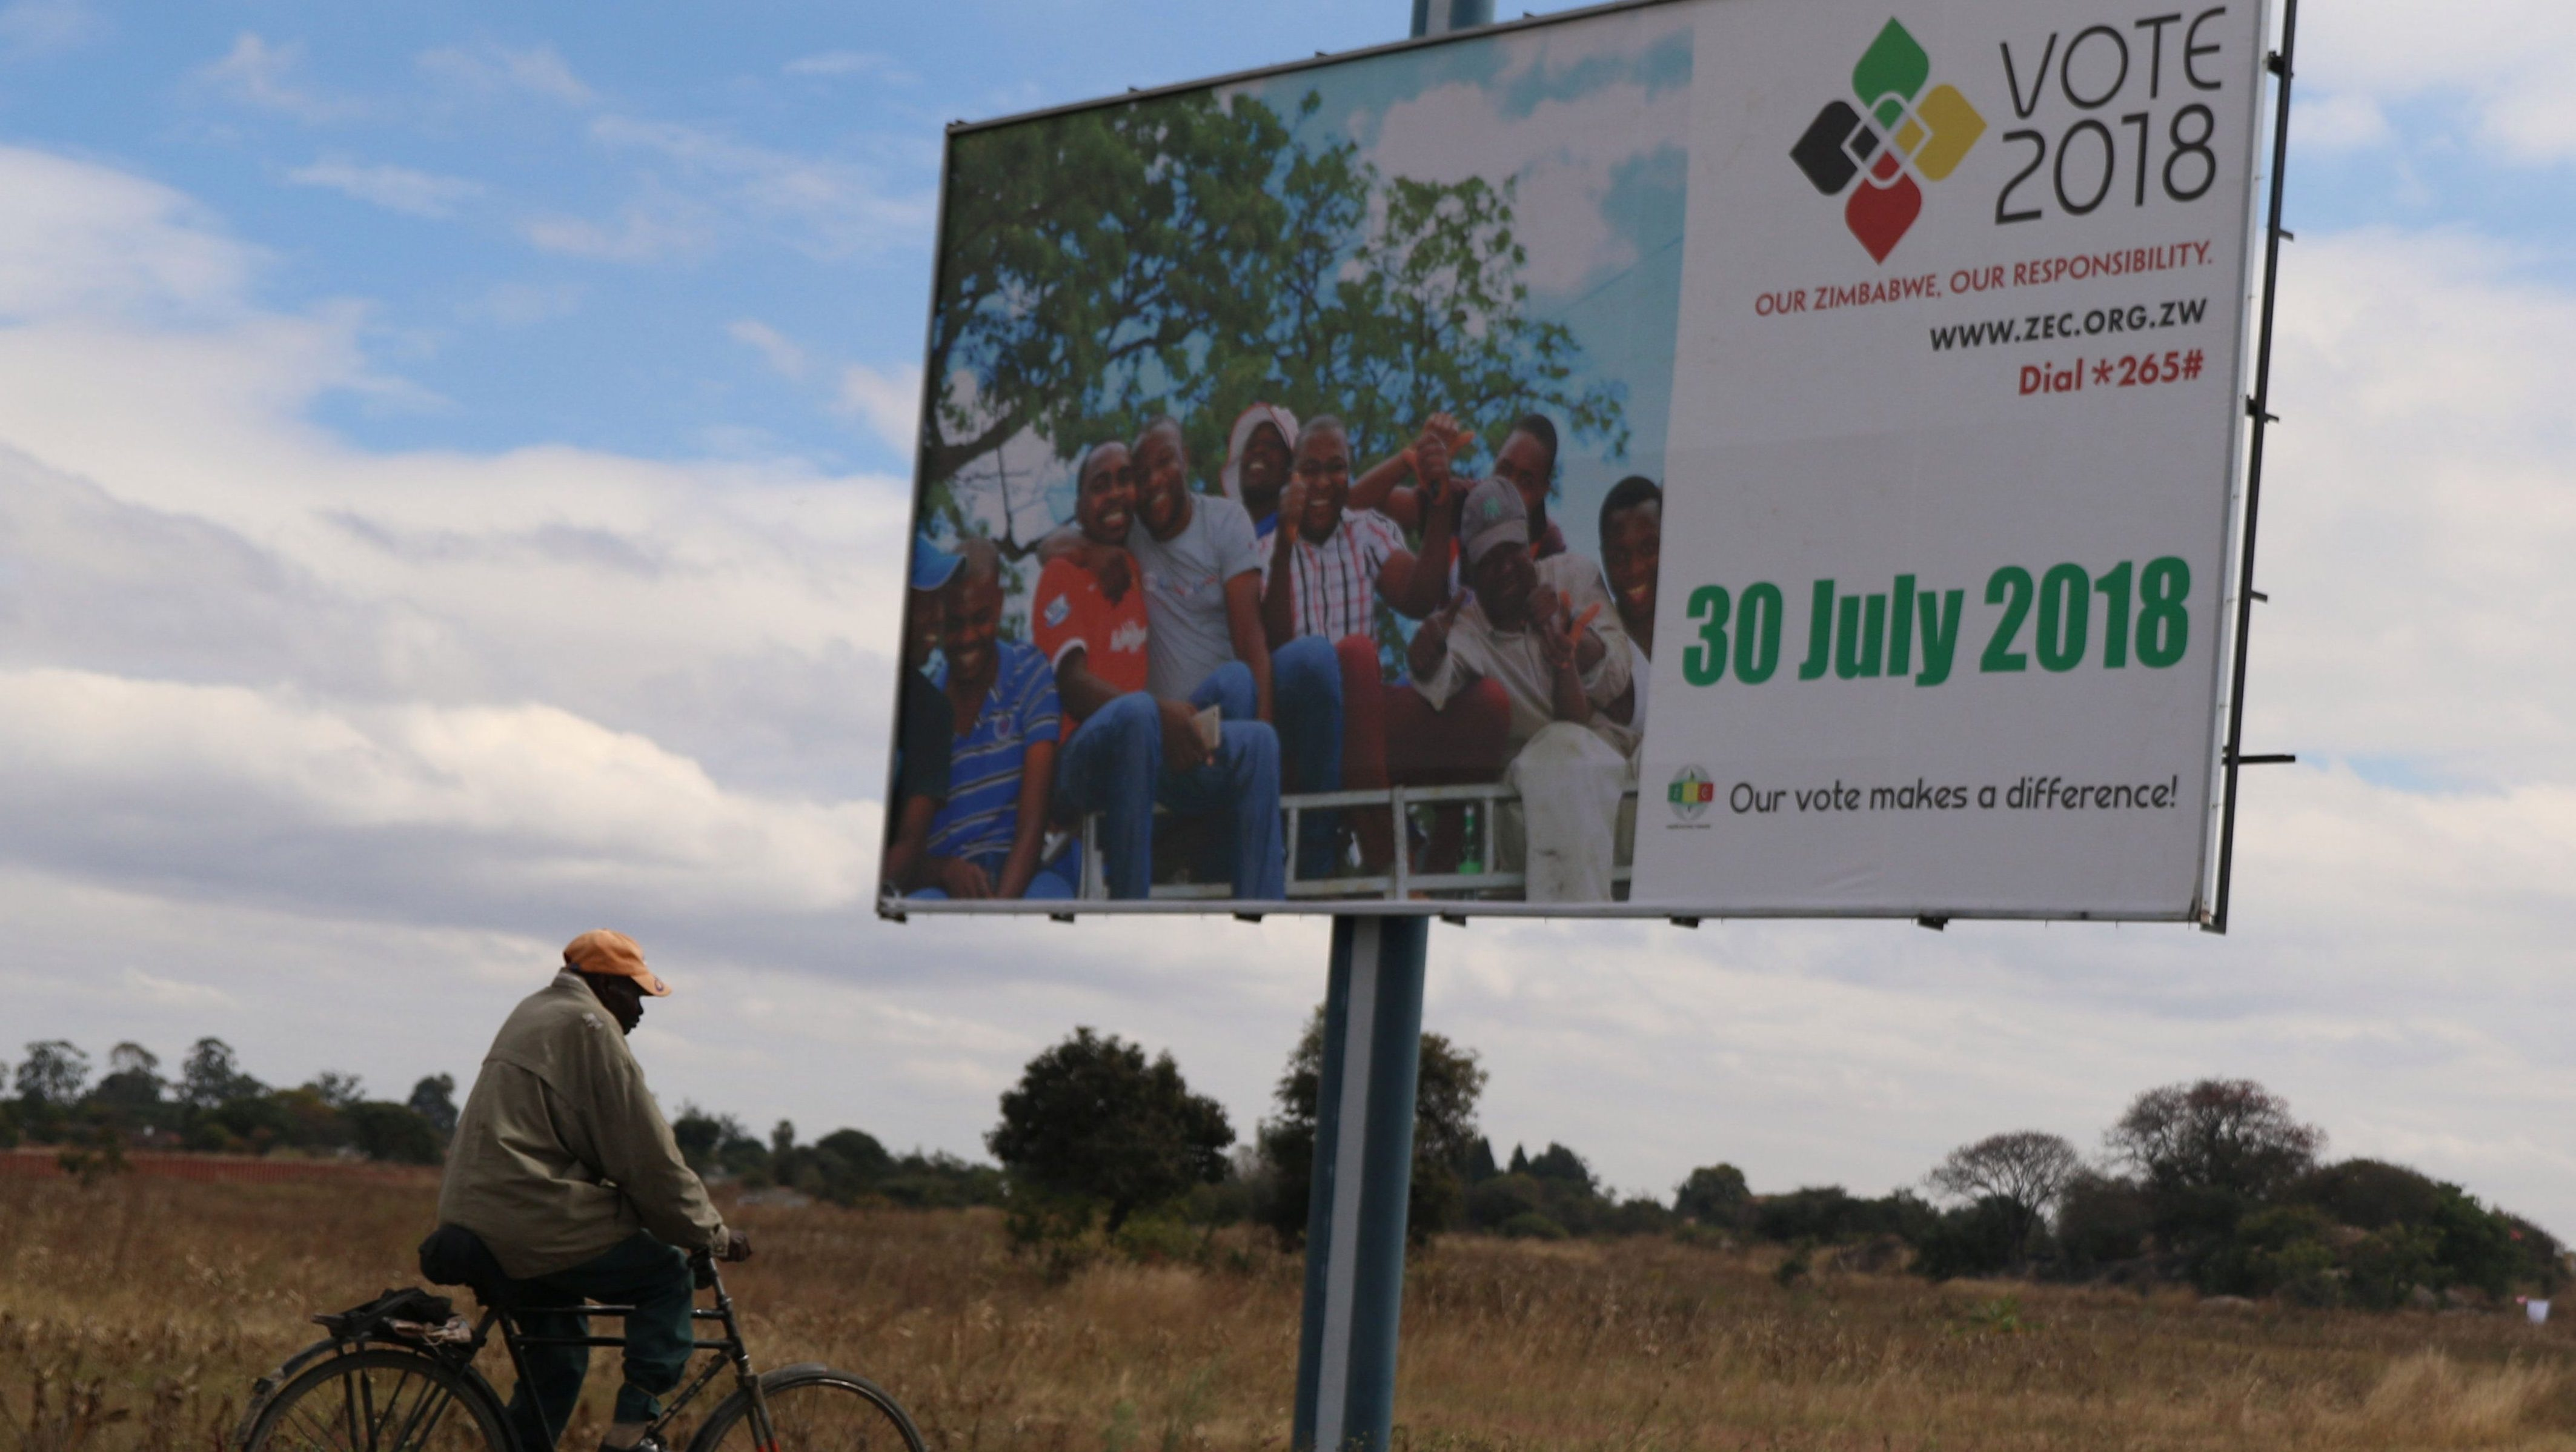 A man cycles past an election billboard in Harare